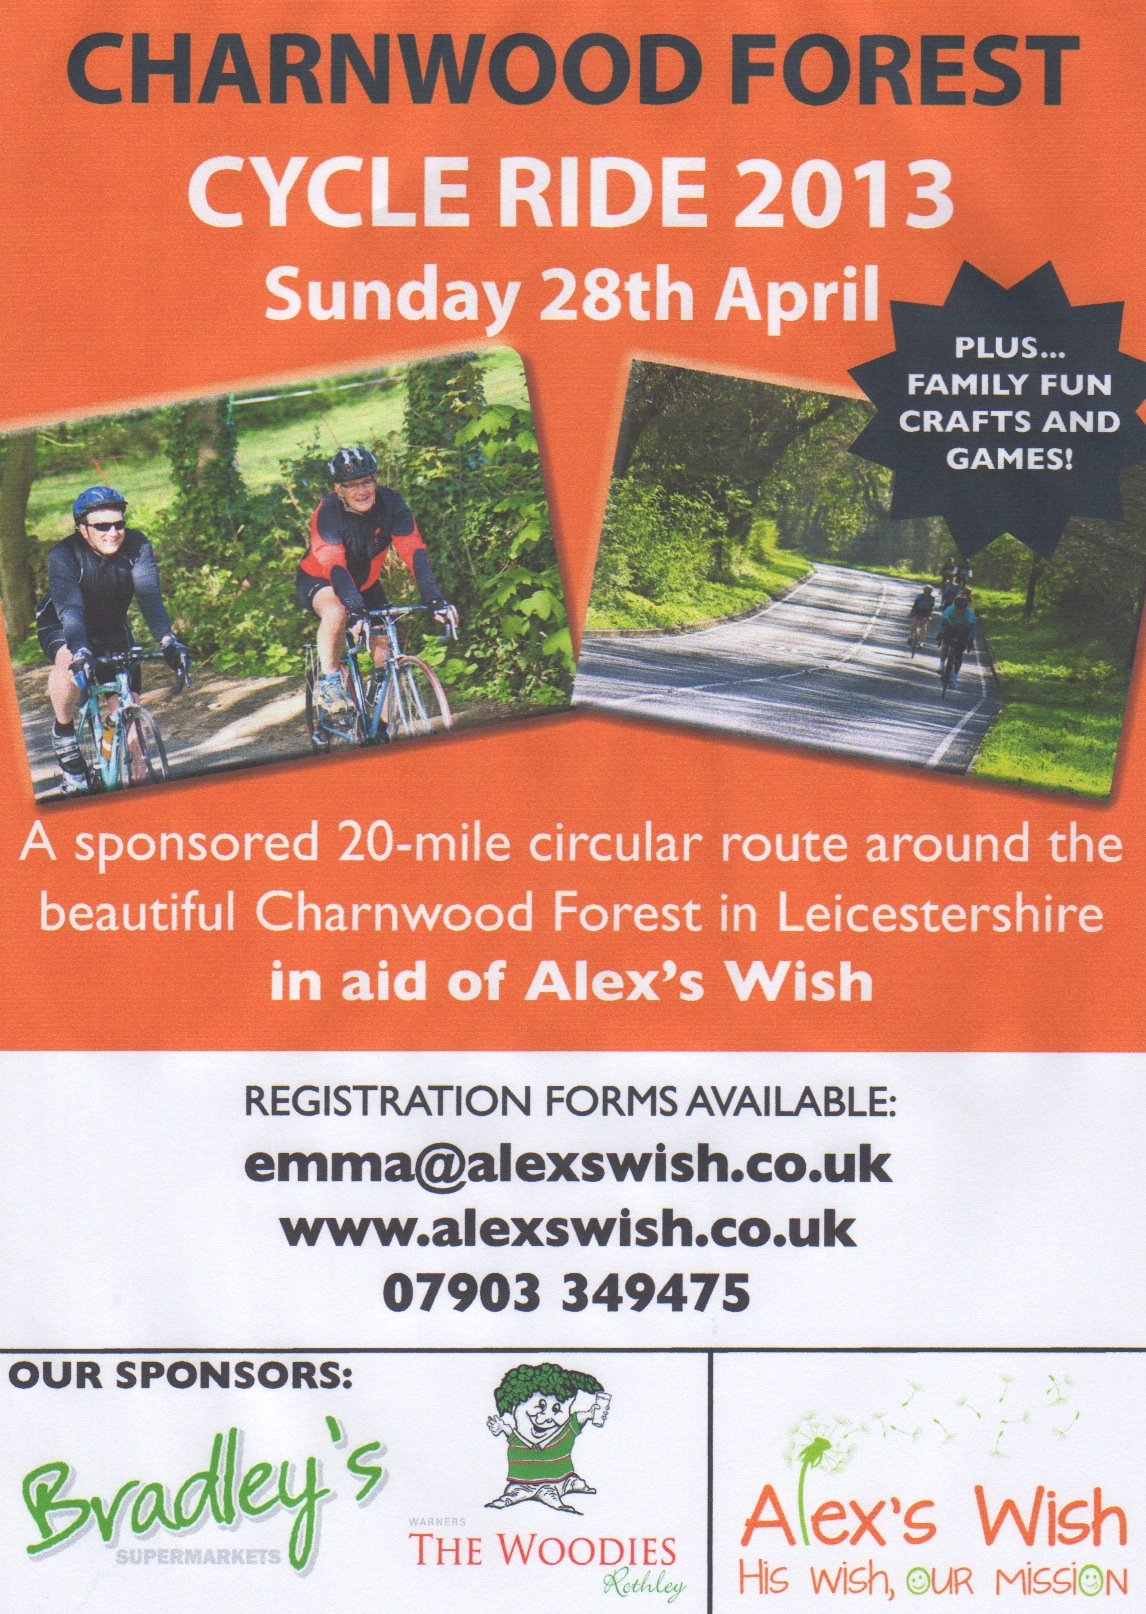 Charnwood Forest Cycle Ride 2013